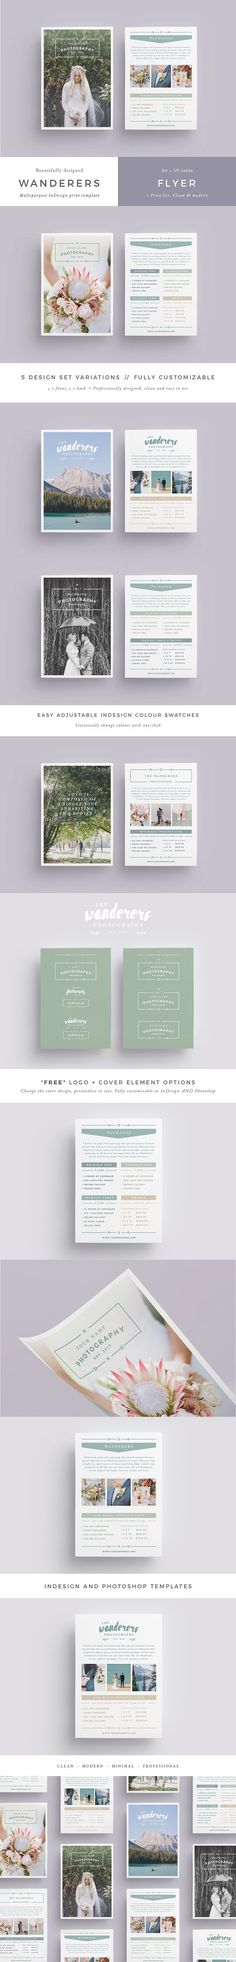 WANDERERS Wedding Flyer Price List by 46&2 Collective on @creativemarket